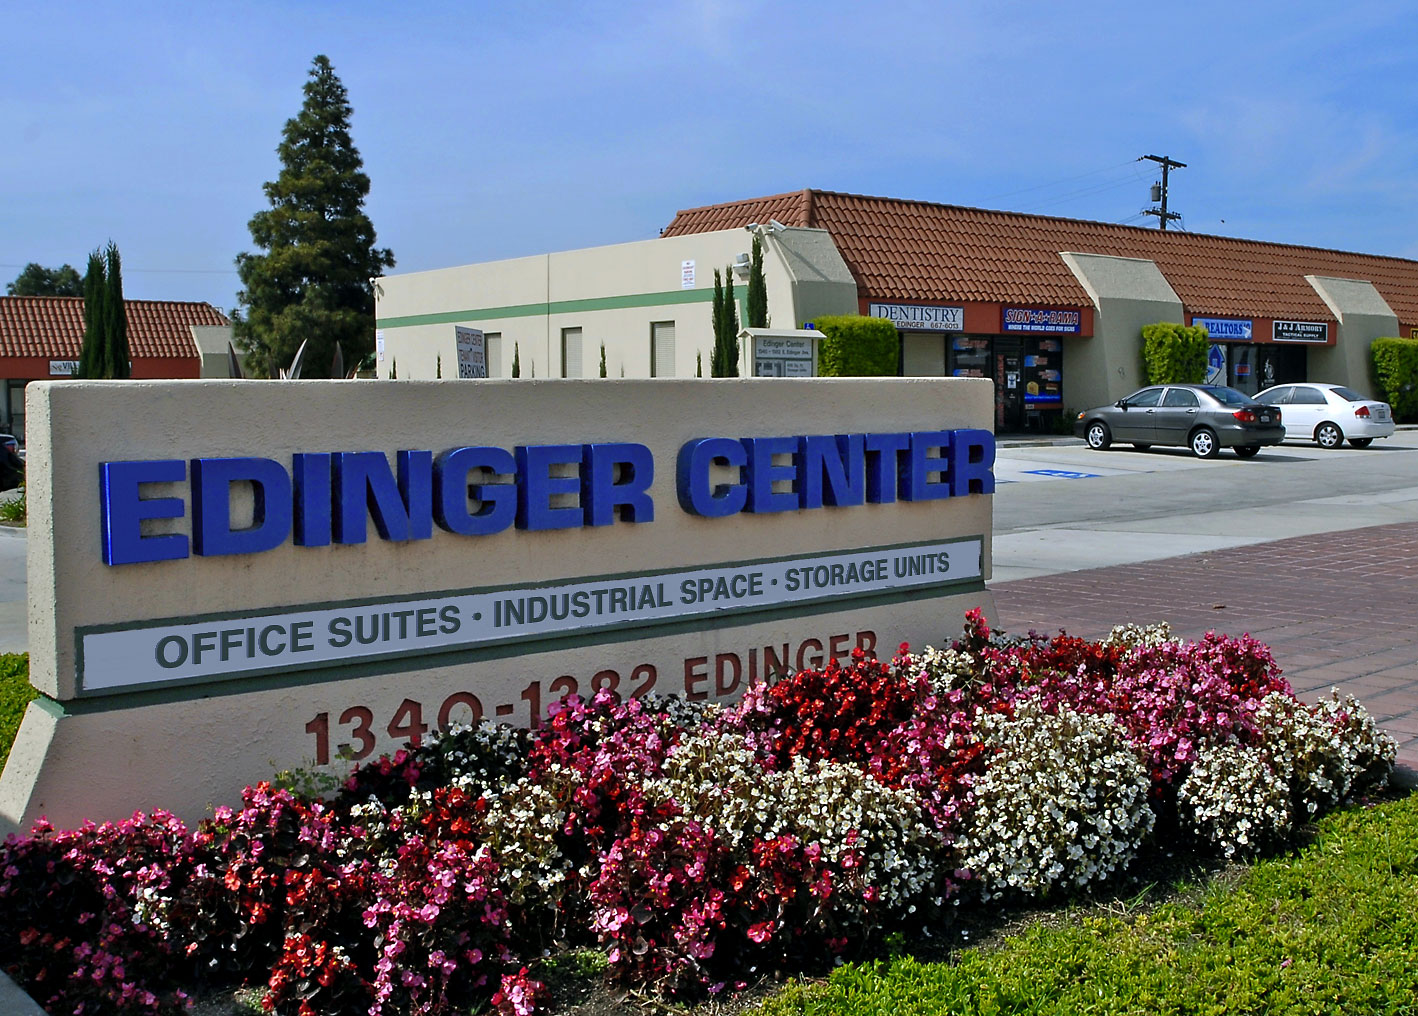 Edinger Center